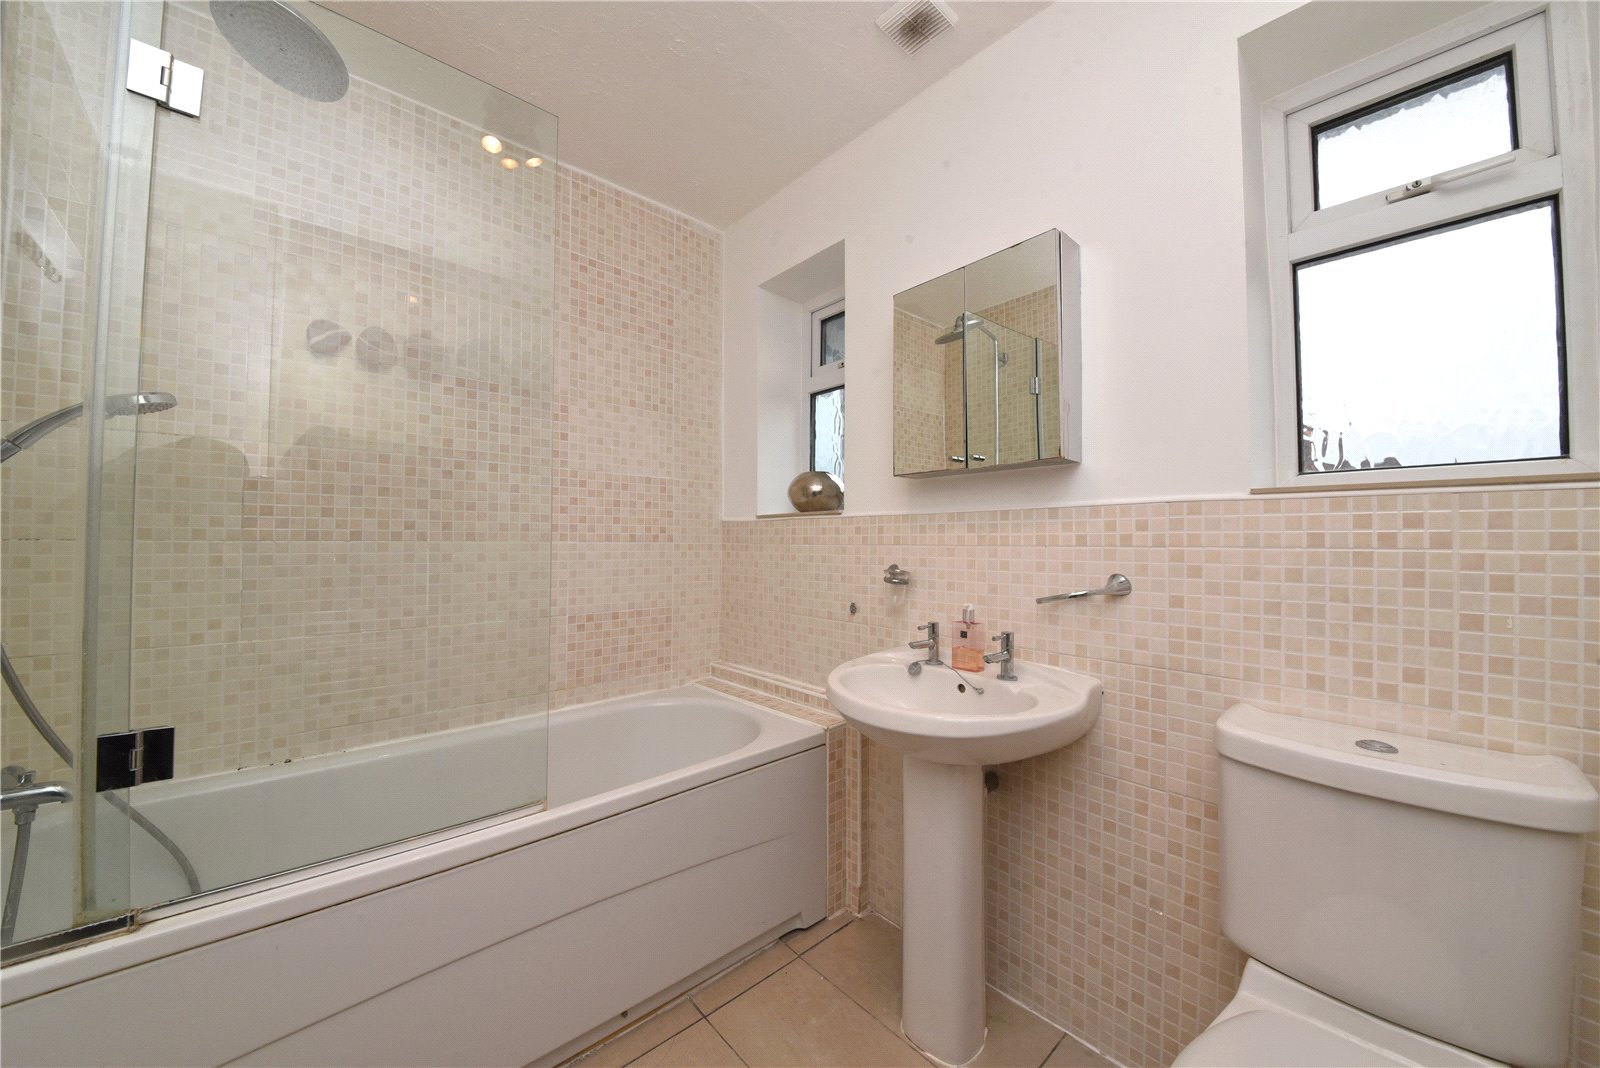 3 bed house for sale in High Barnet, EN5 1AL  - Property Image 6